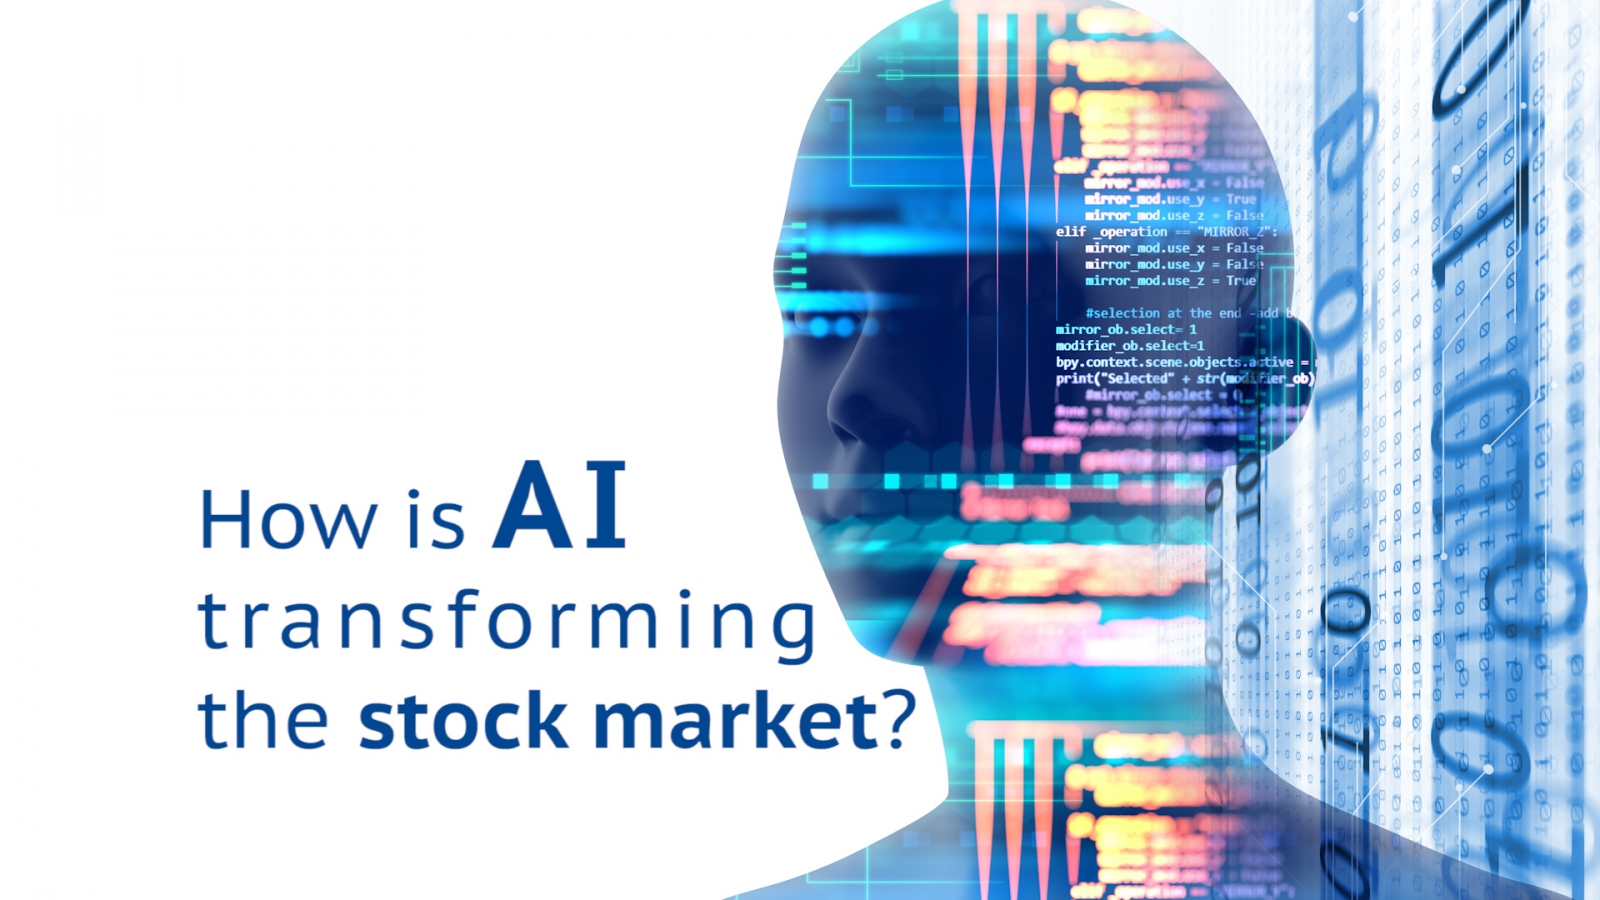 How artificial intelligence is transforming the stock marekt